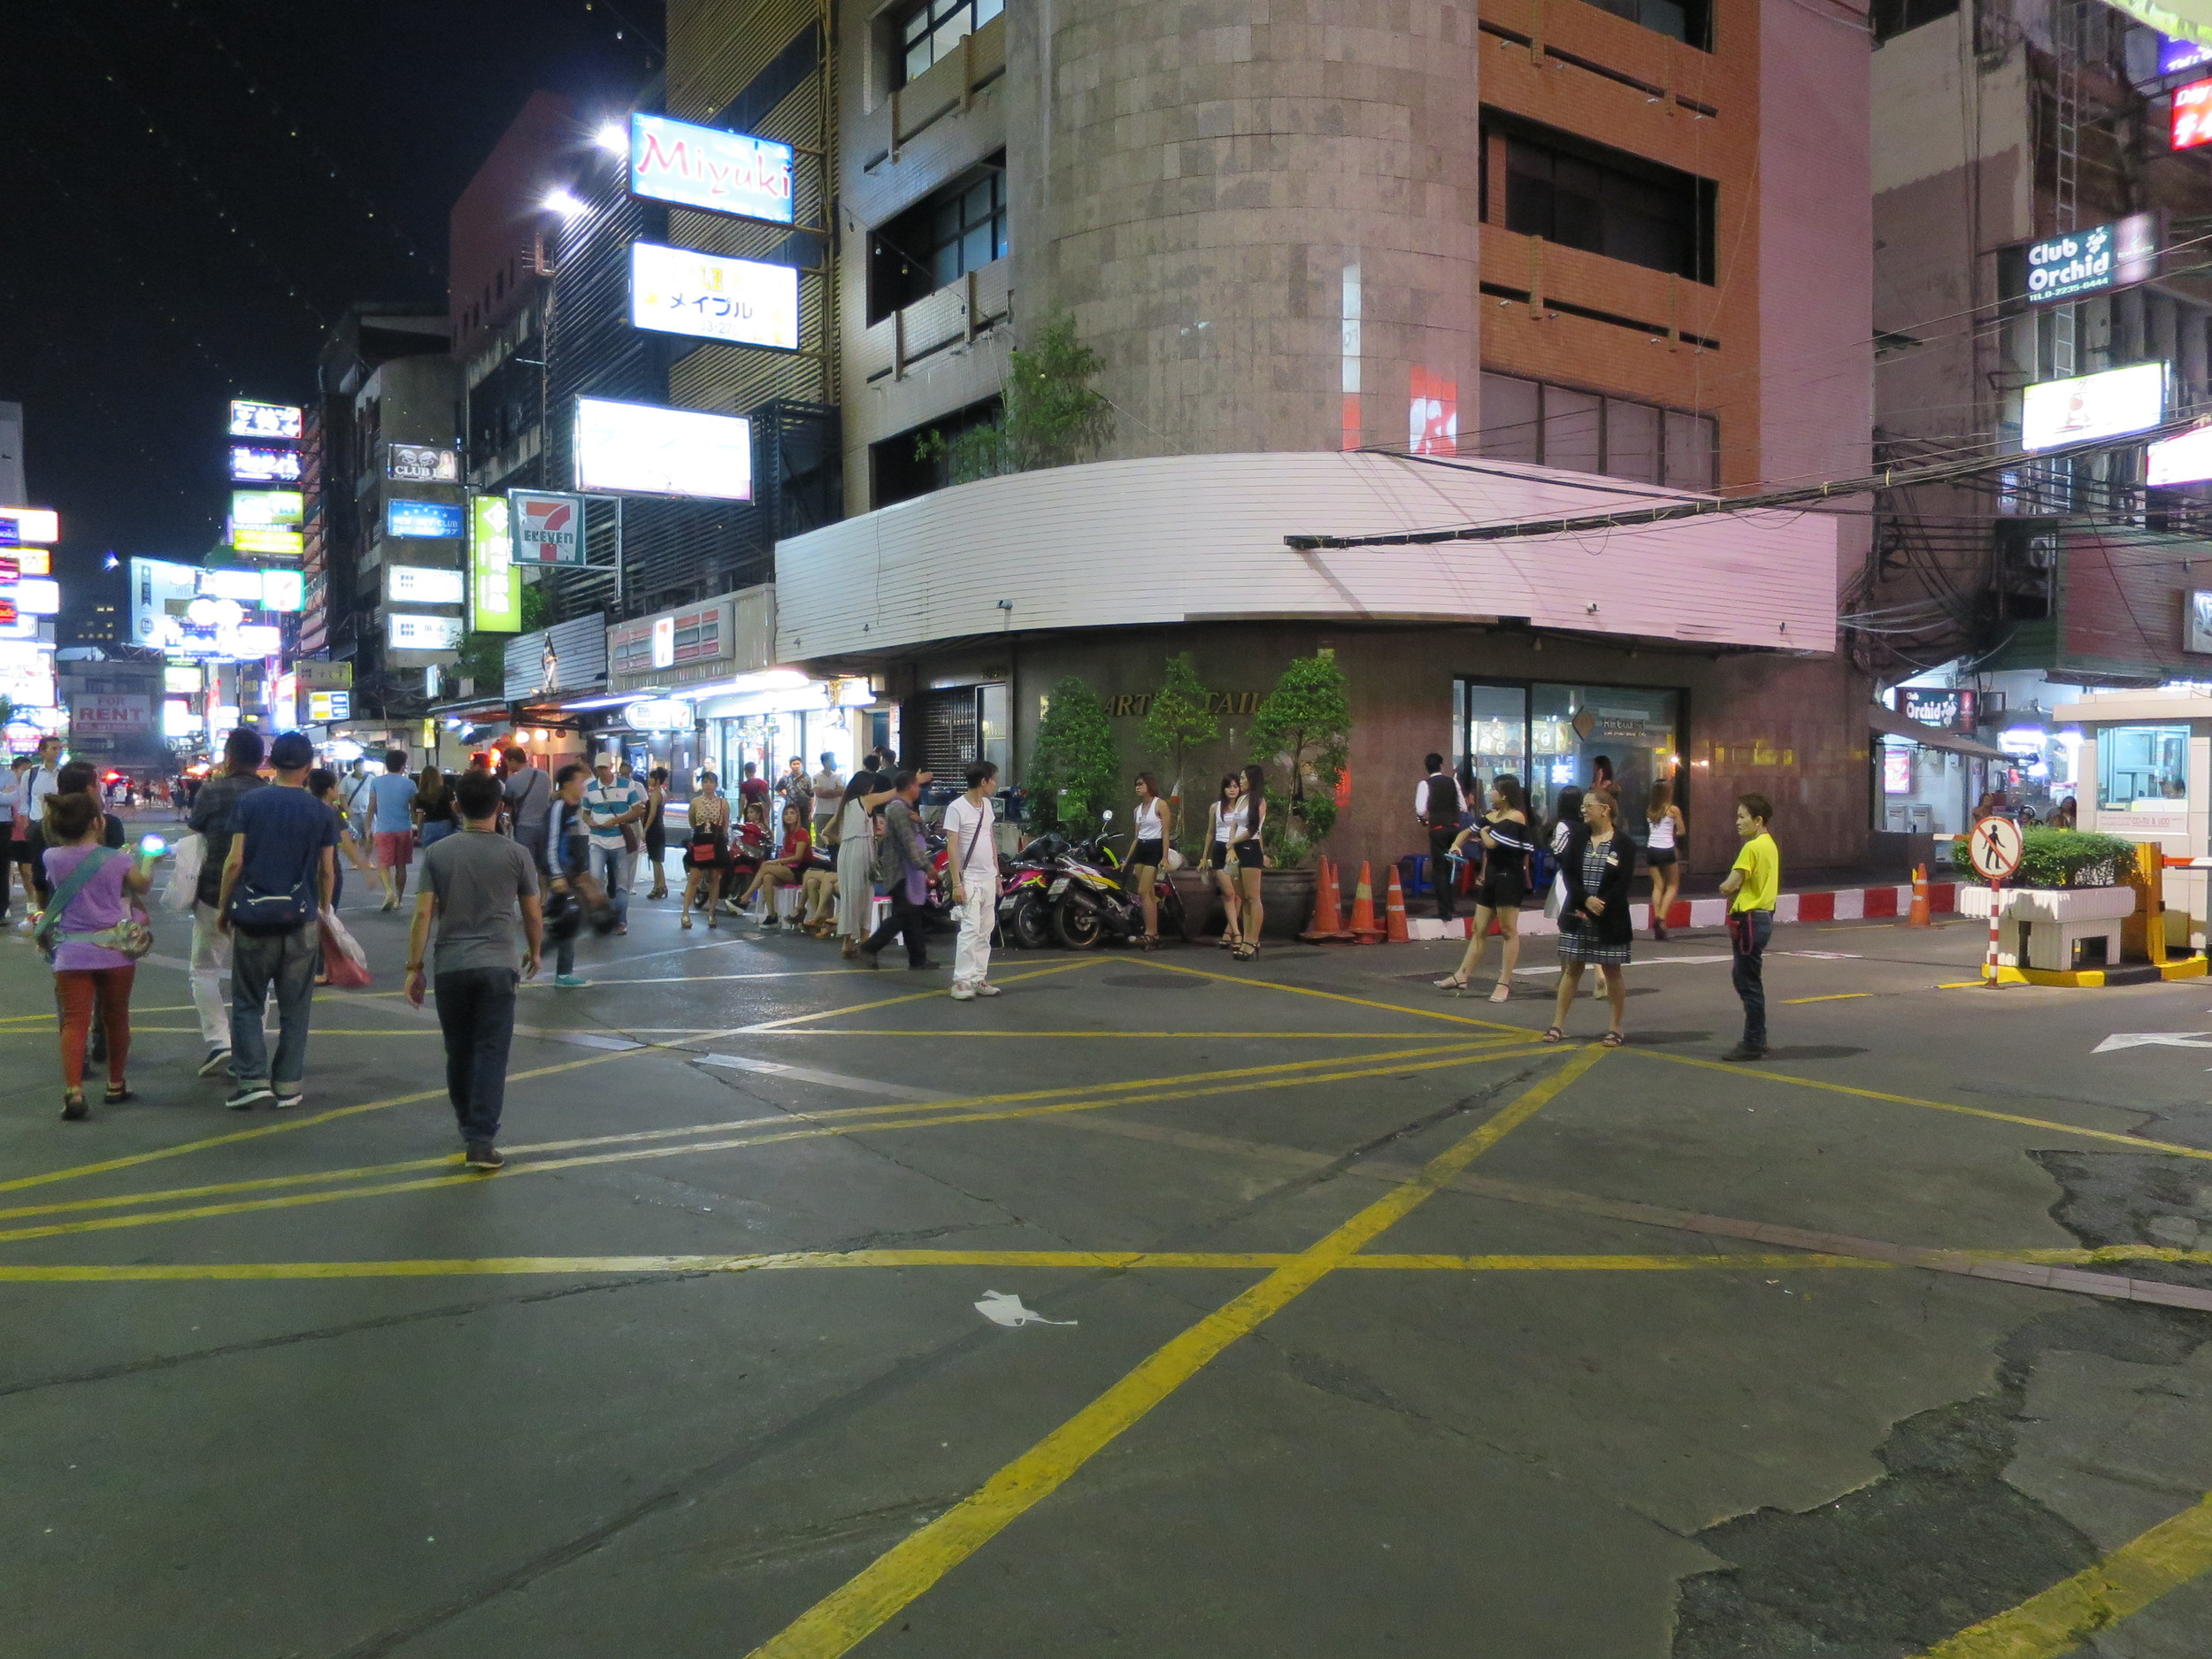 Bargirls  outside of their place of business in Patpong